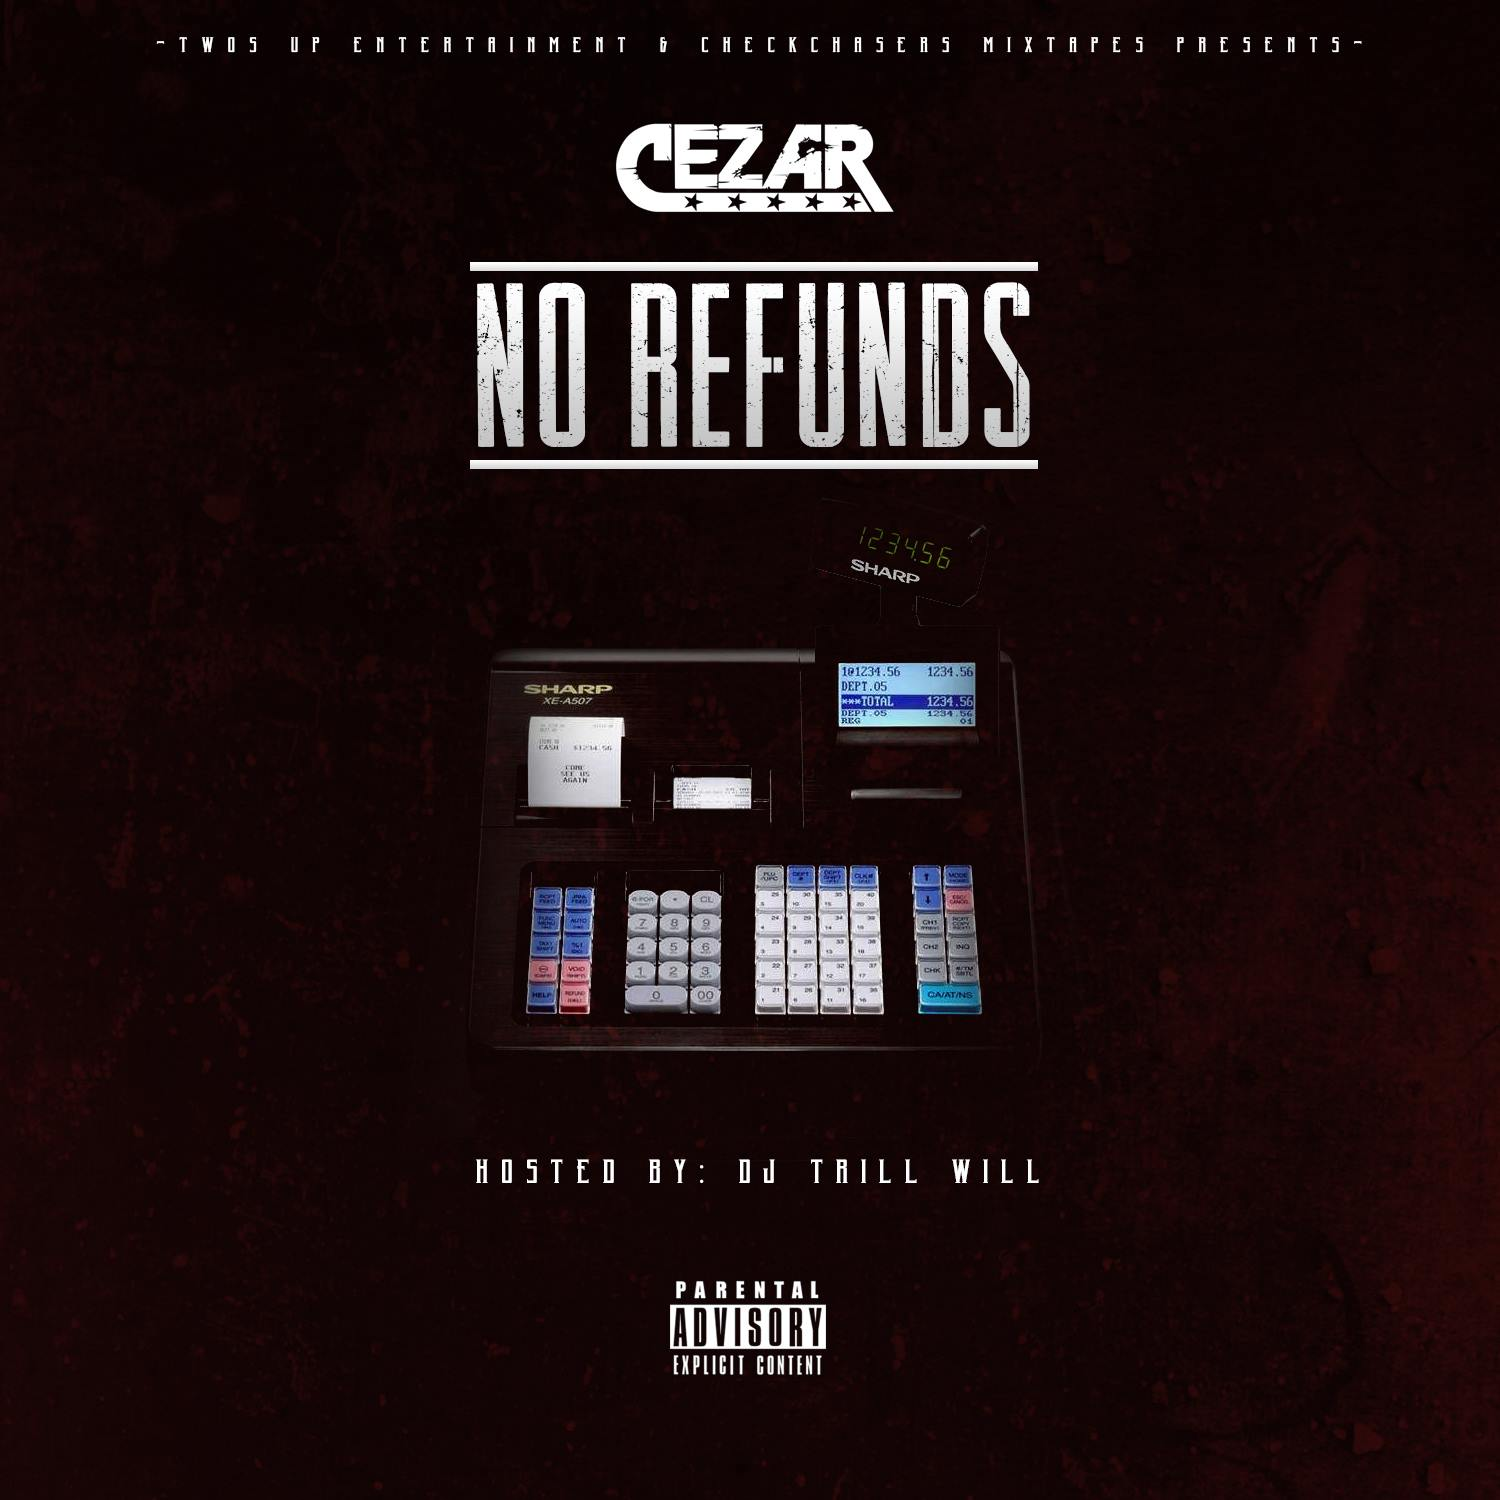 No Refunds Cover Art